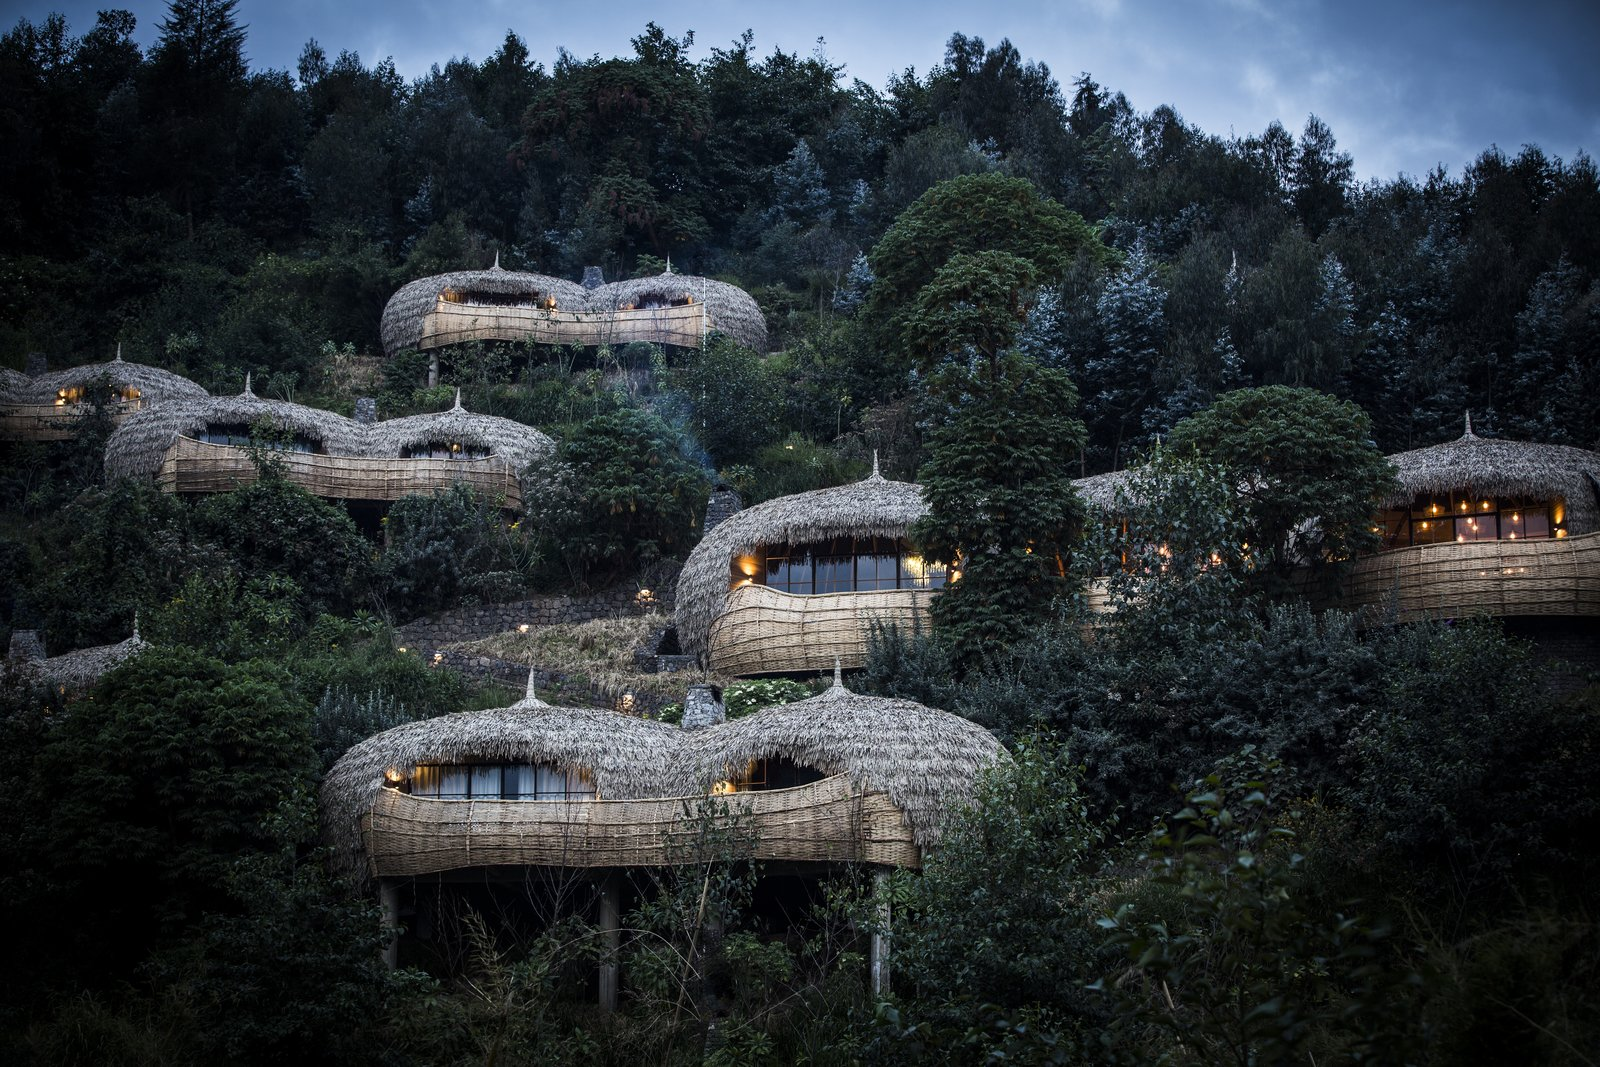 Take an Eco-Escape to a Spherical Forest Villa in an Eroded Volcanic Cone in Rwanda - Photo 1 of 11